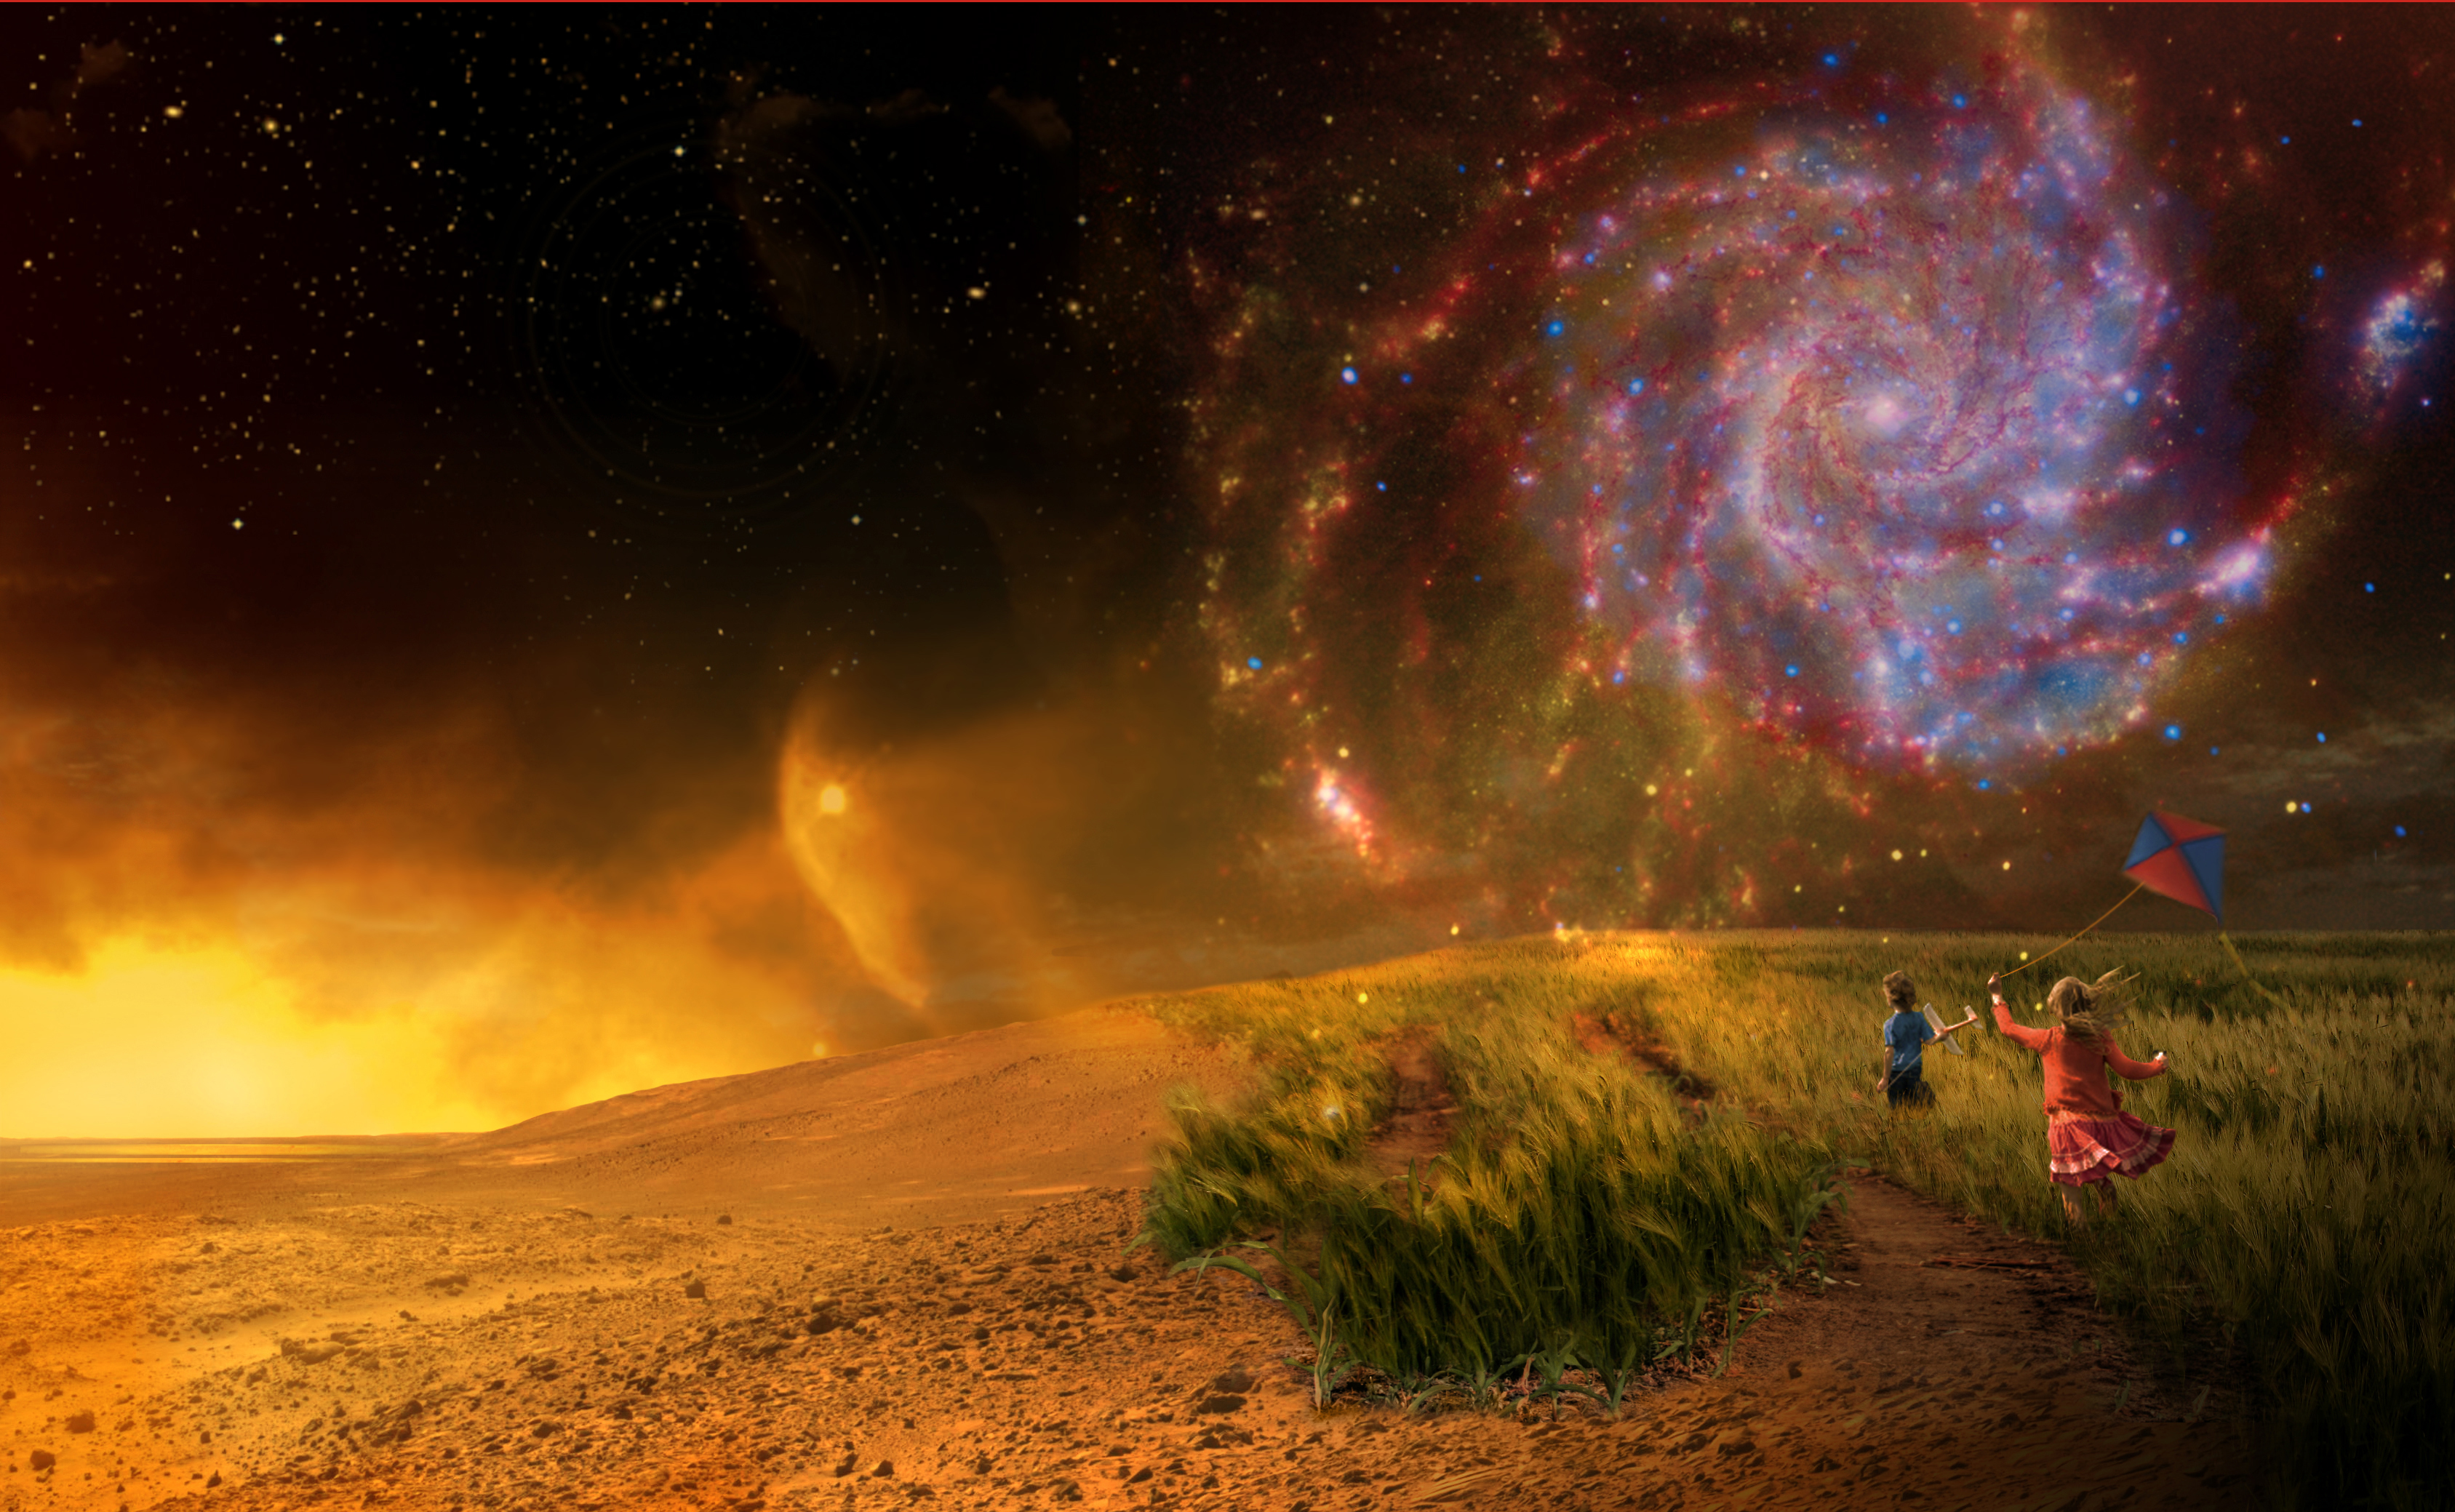 Discover the Science of Astrobiology at a NASA Social Event in Chicago